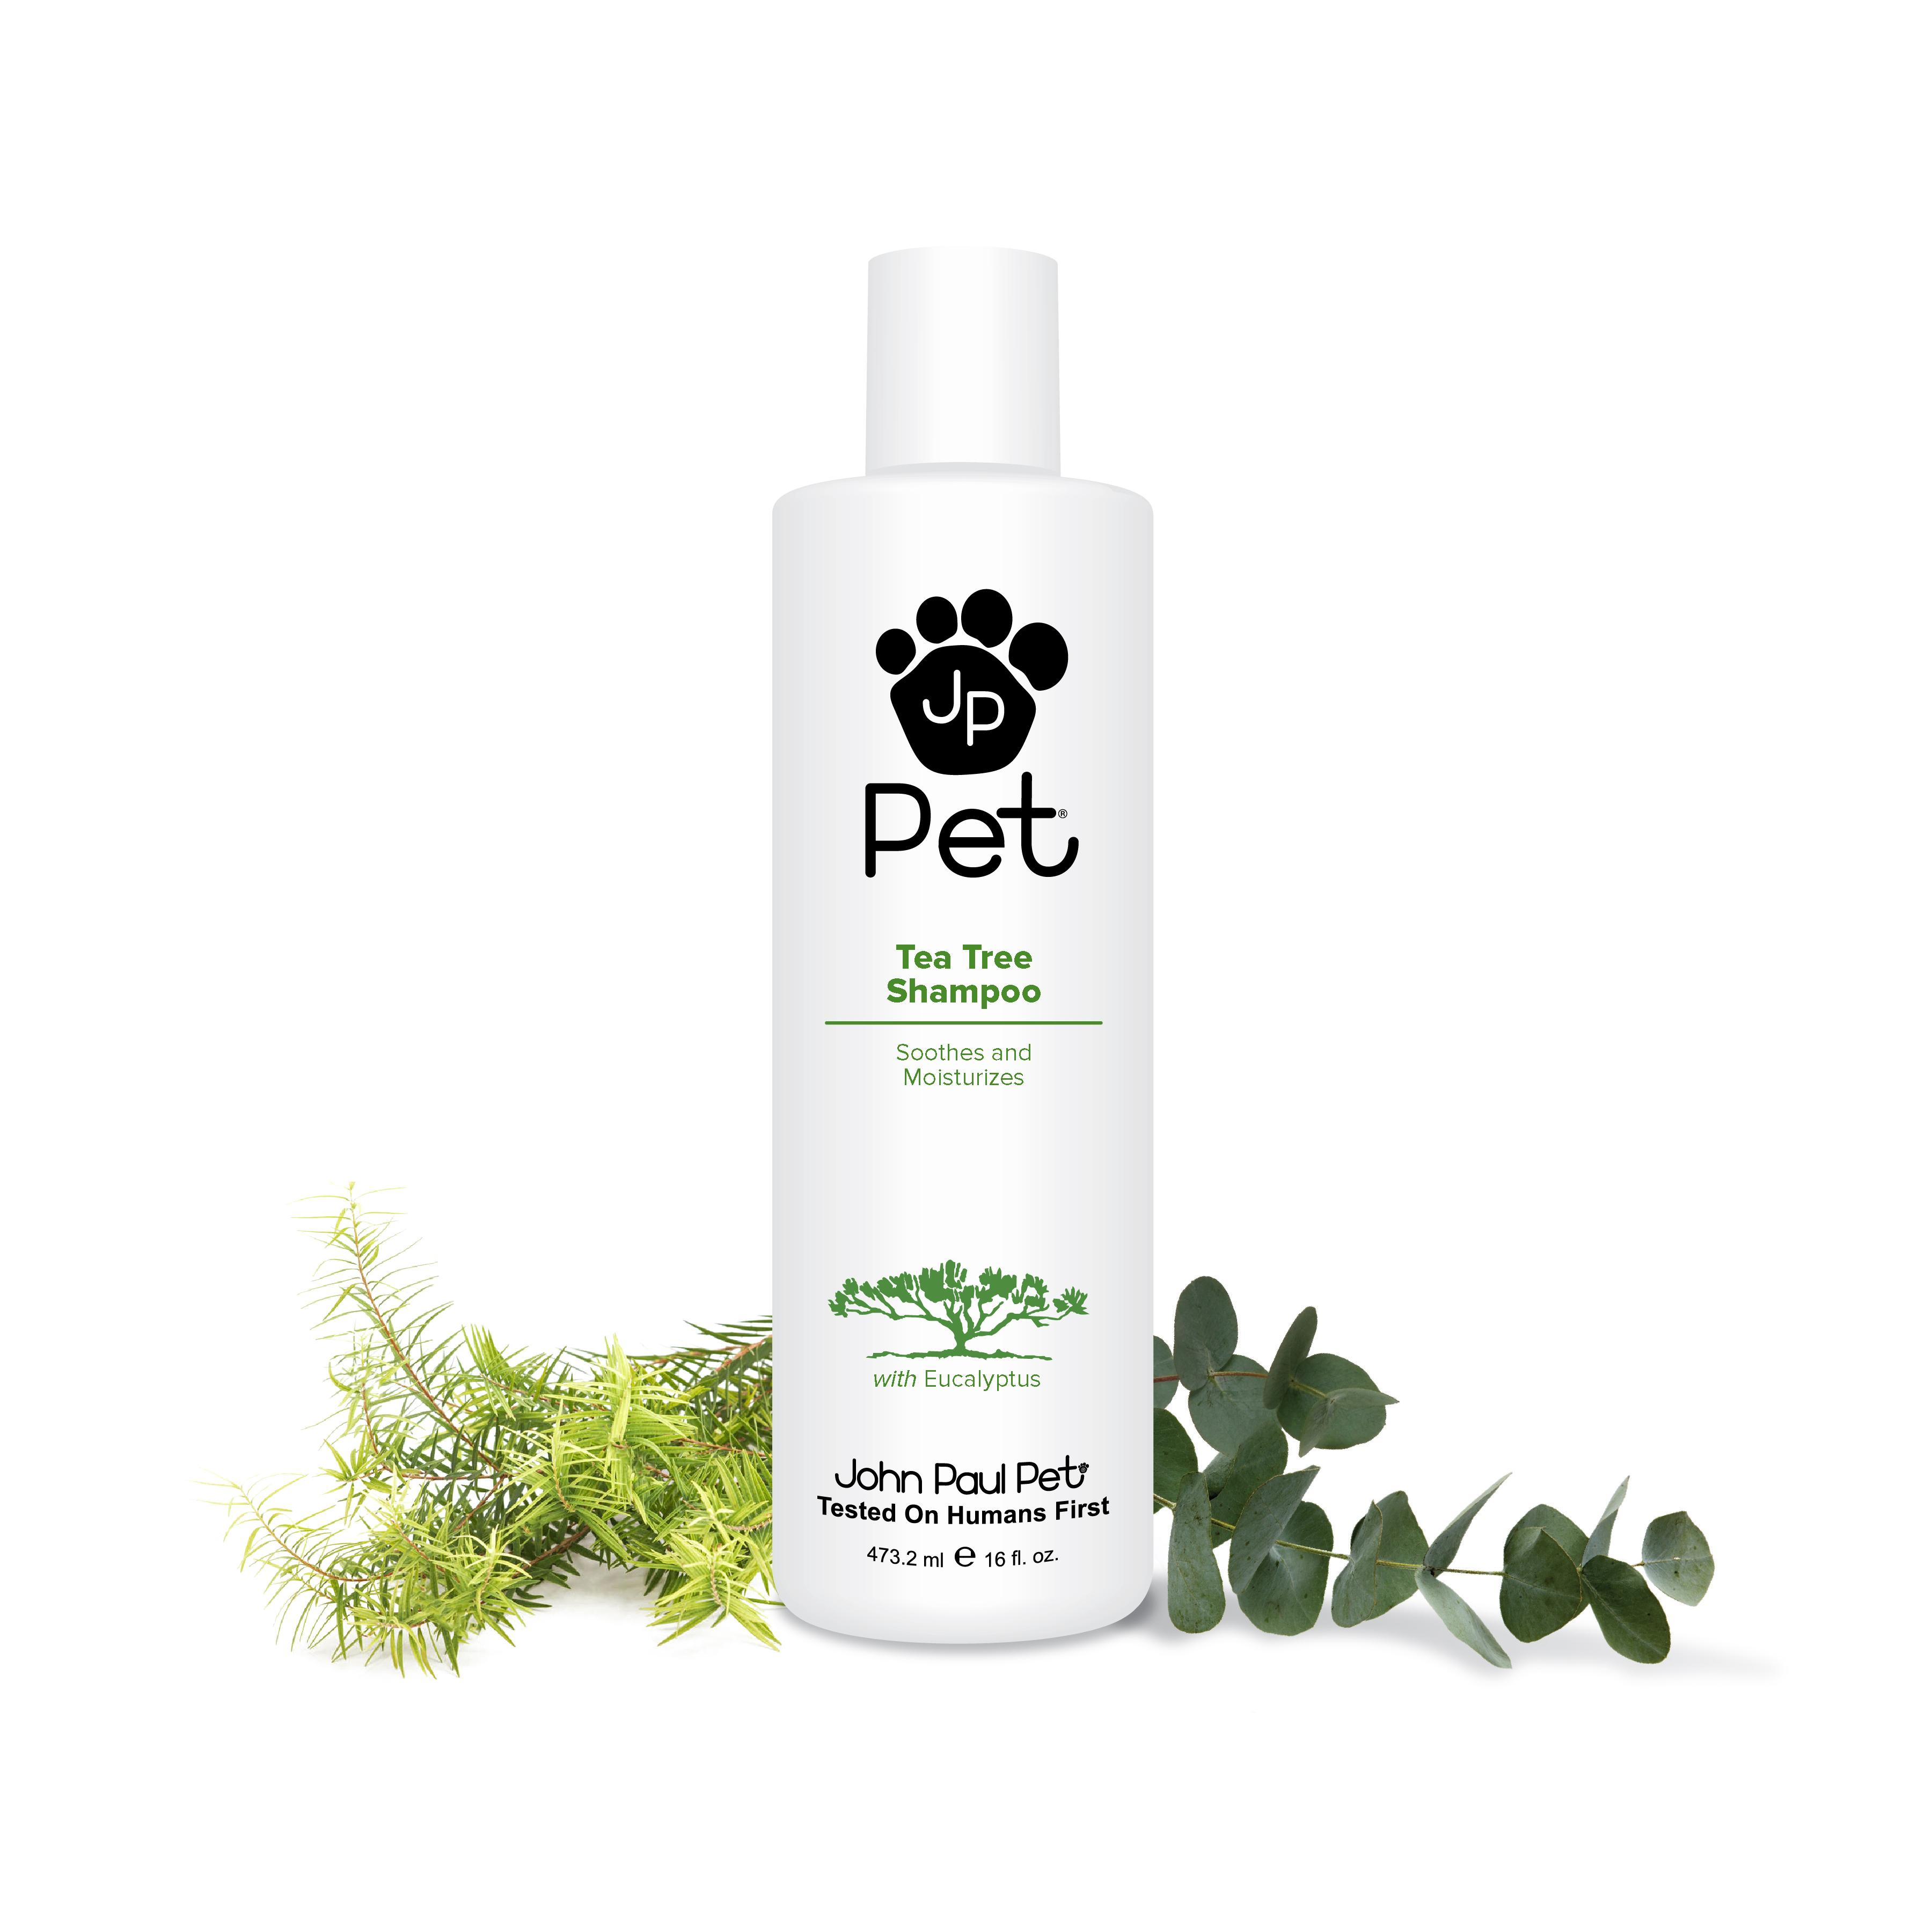 tea tree dog shampoo john paul pet australian tea tree and eucalyptus oil shampoo. Black Bedroom Furniture Sets. Home Design Ideas